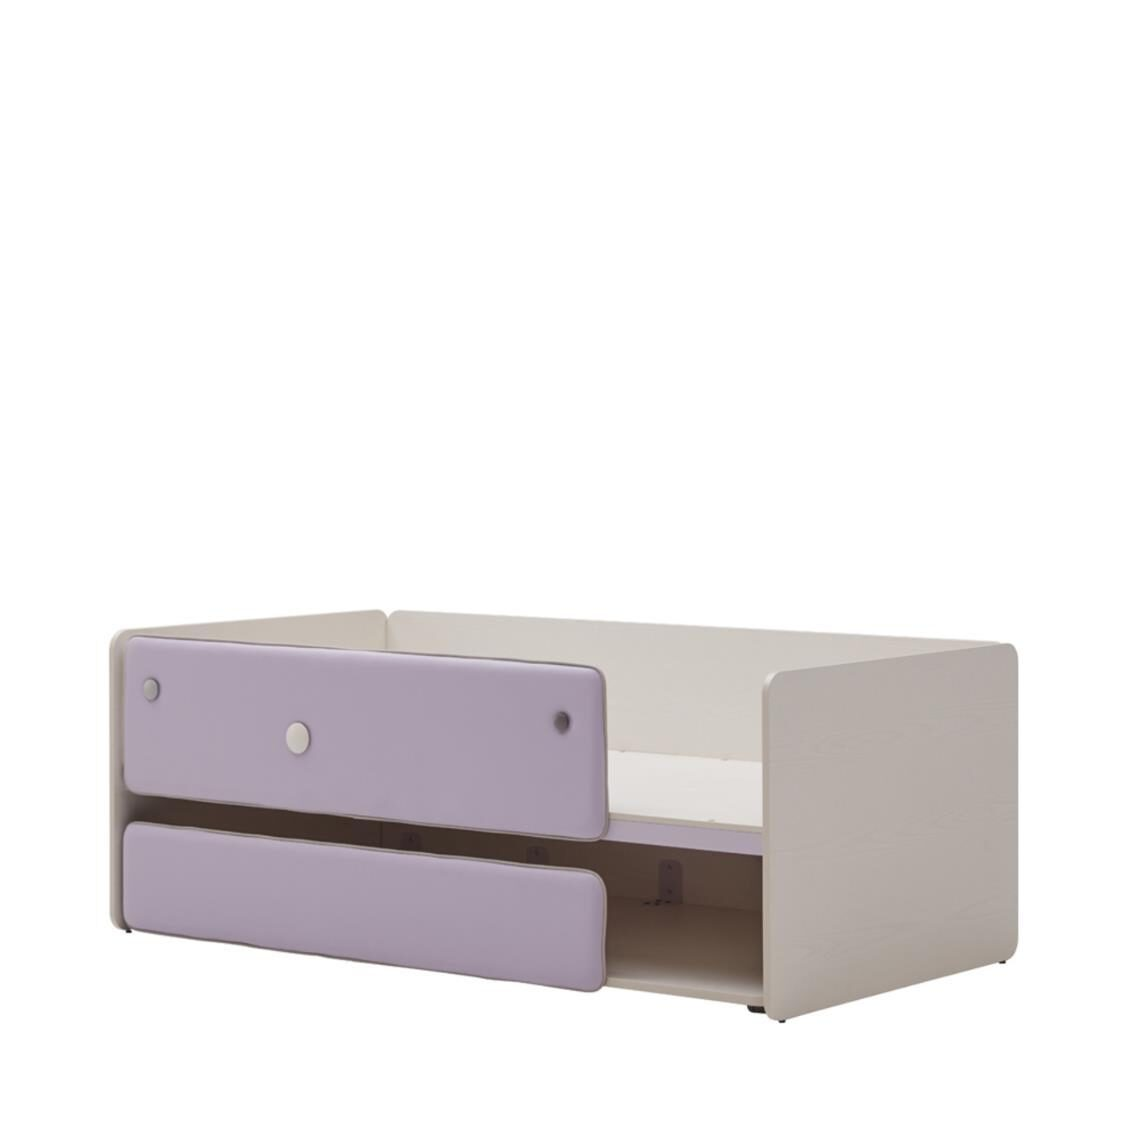 Cabin 1000W Sliding 2-story Bed FIVLU Finland Ivory Light Purple